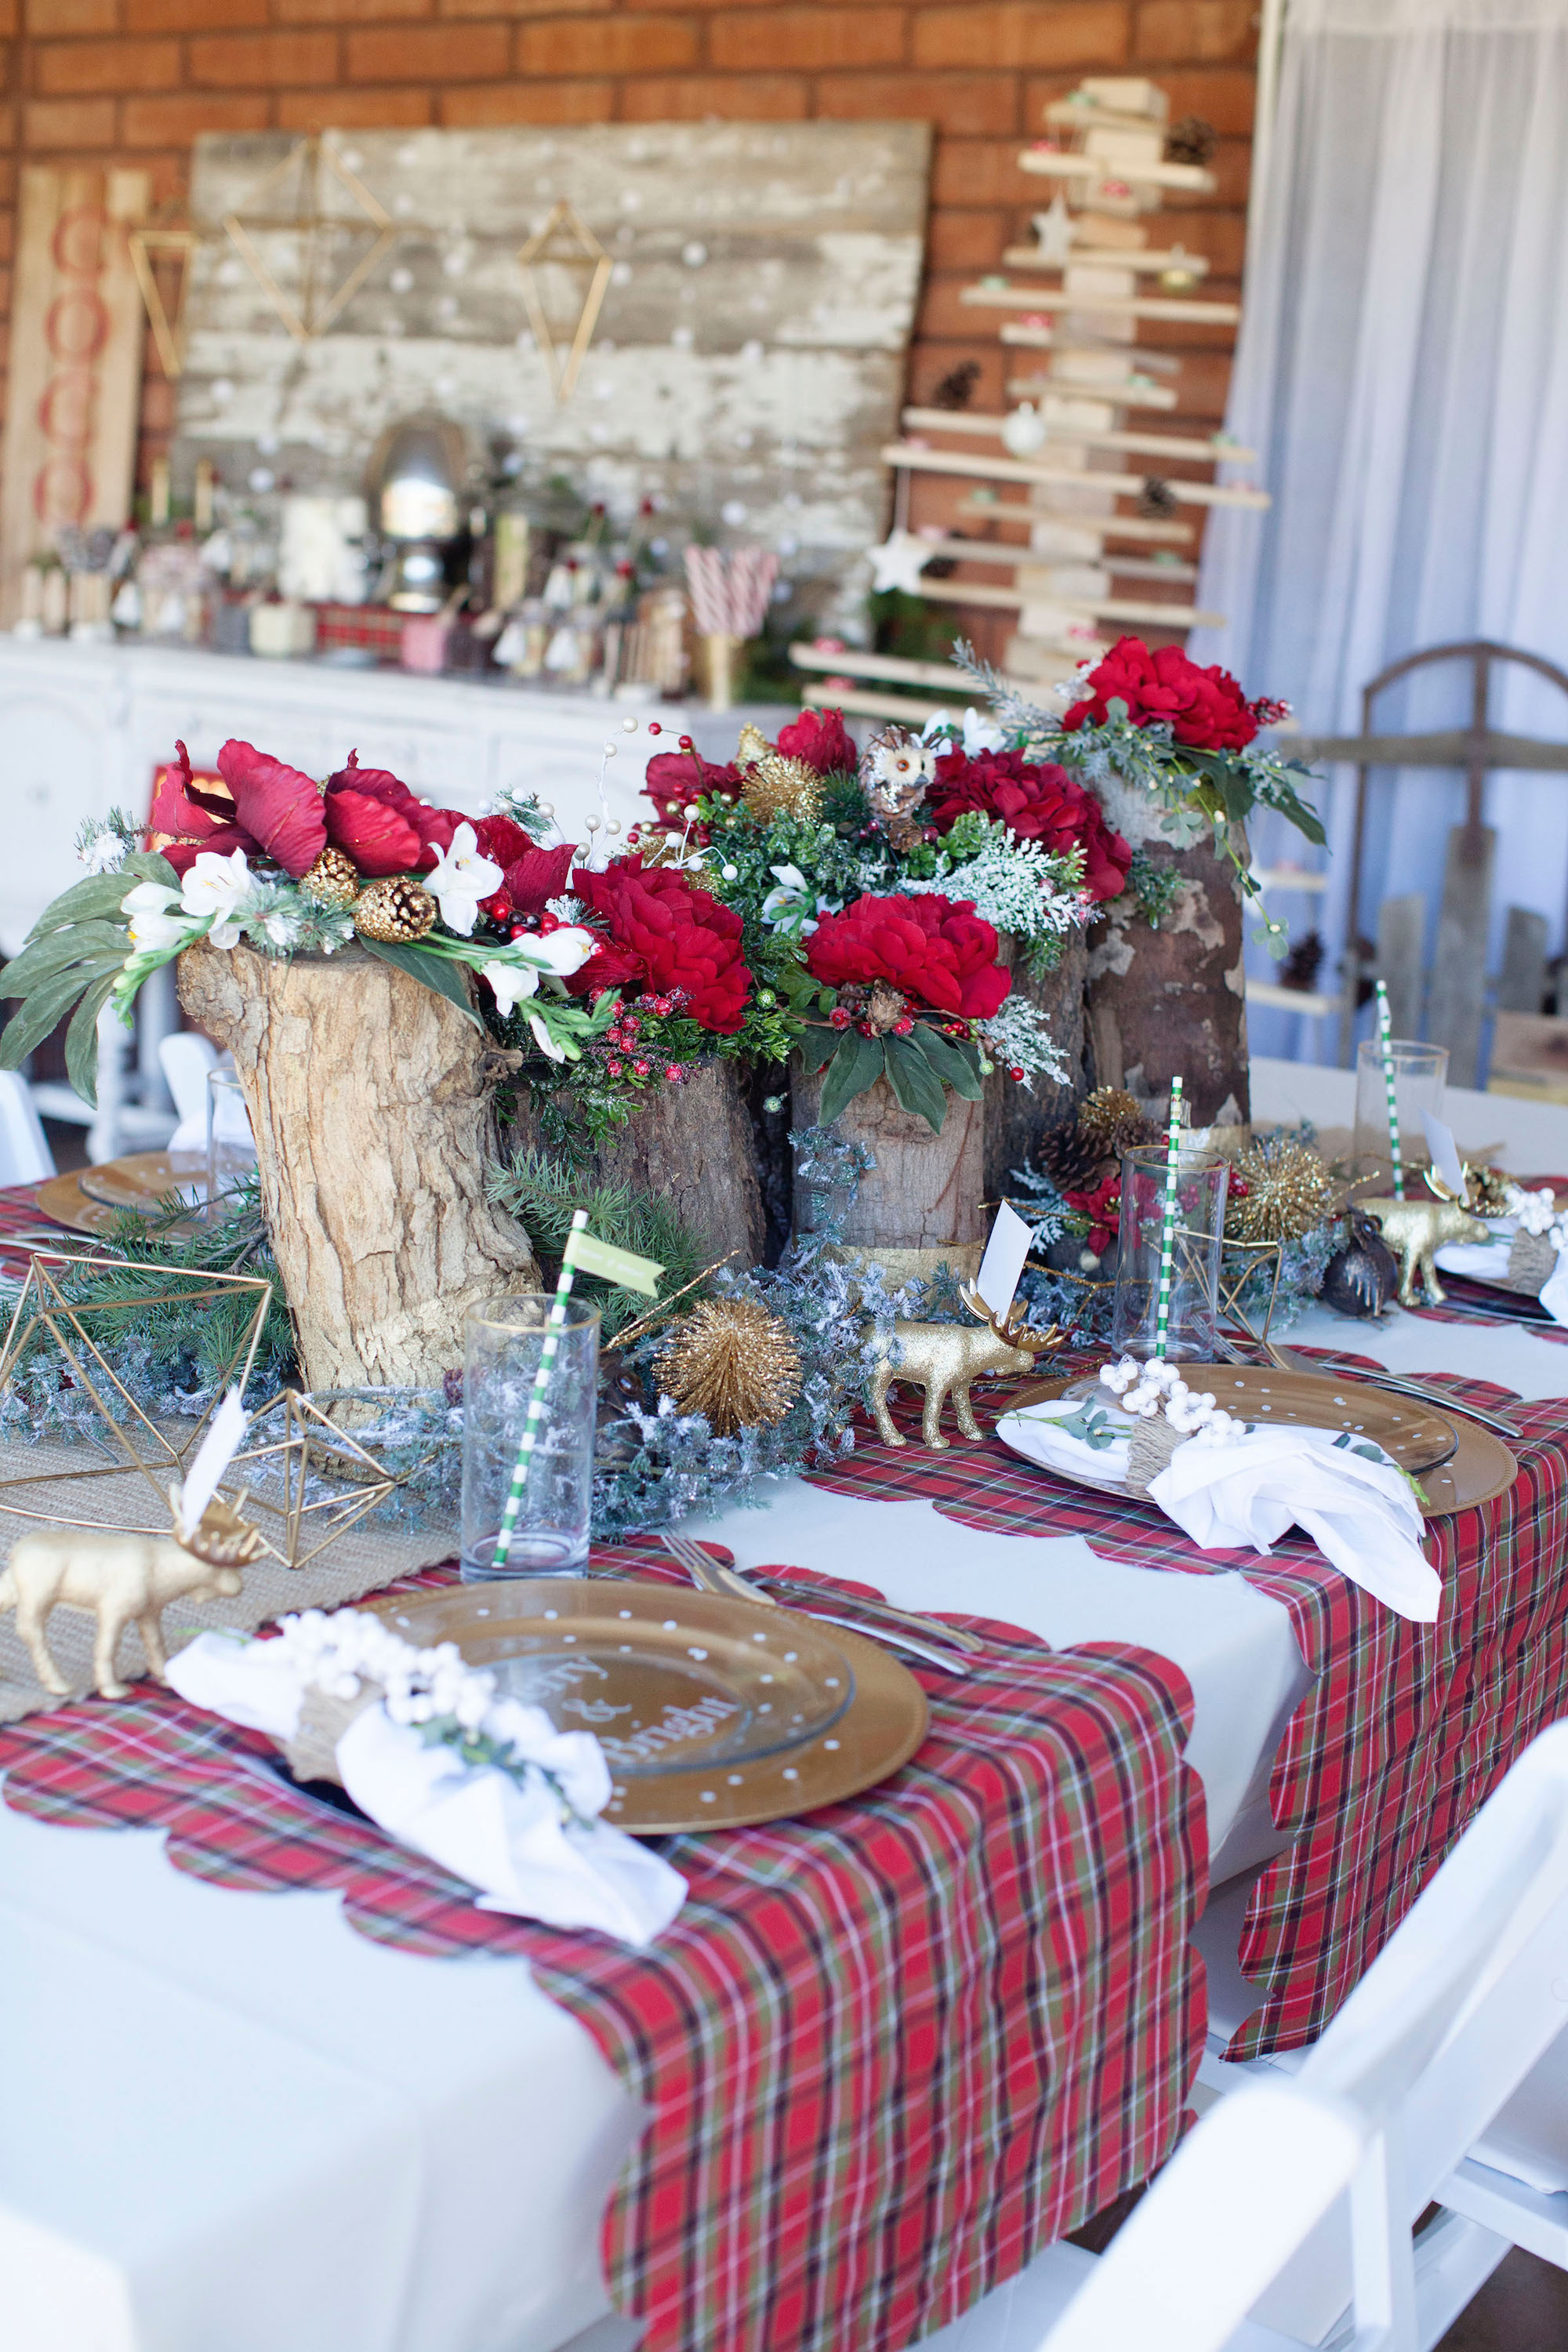 Easy Scalloped Christmas Table Runner Tutorial